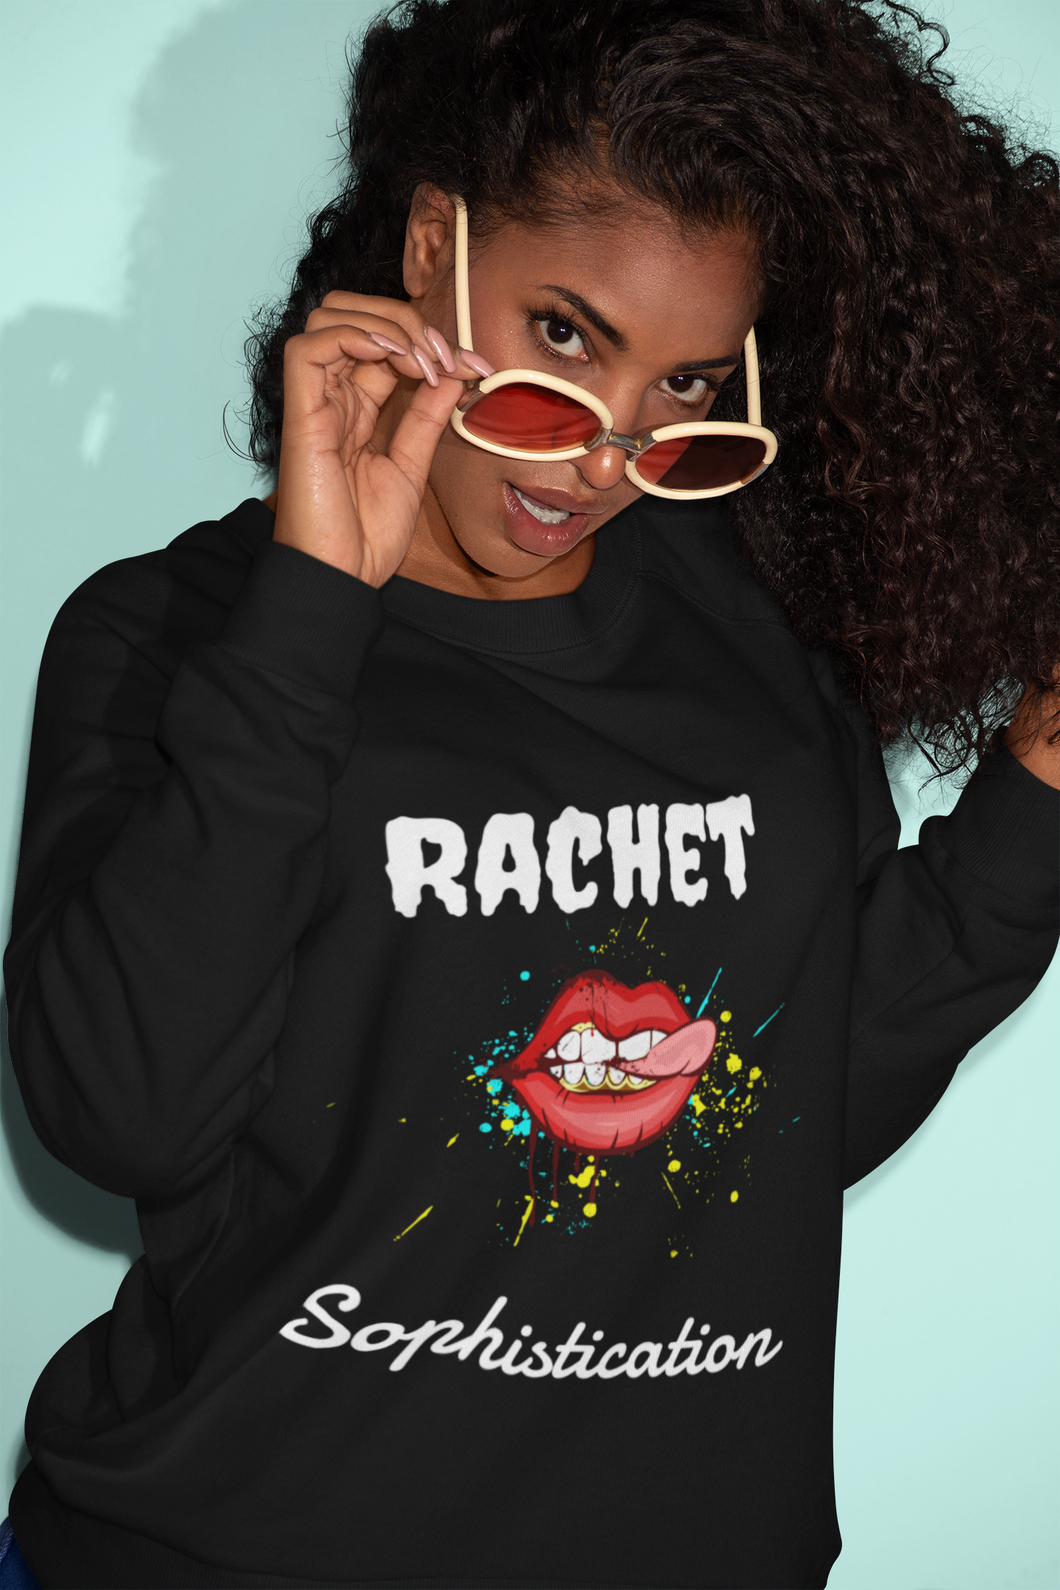 Rachet Sophistication Sweatshirt